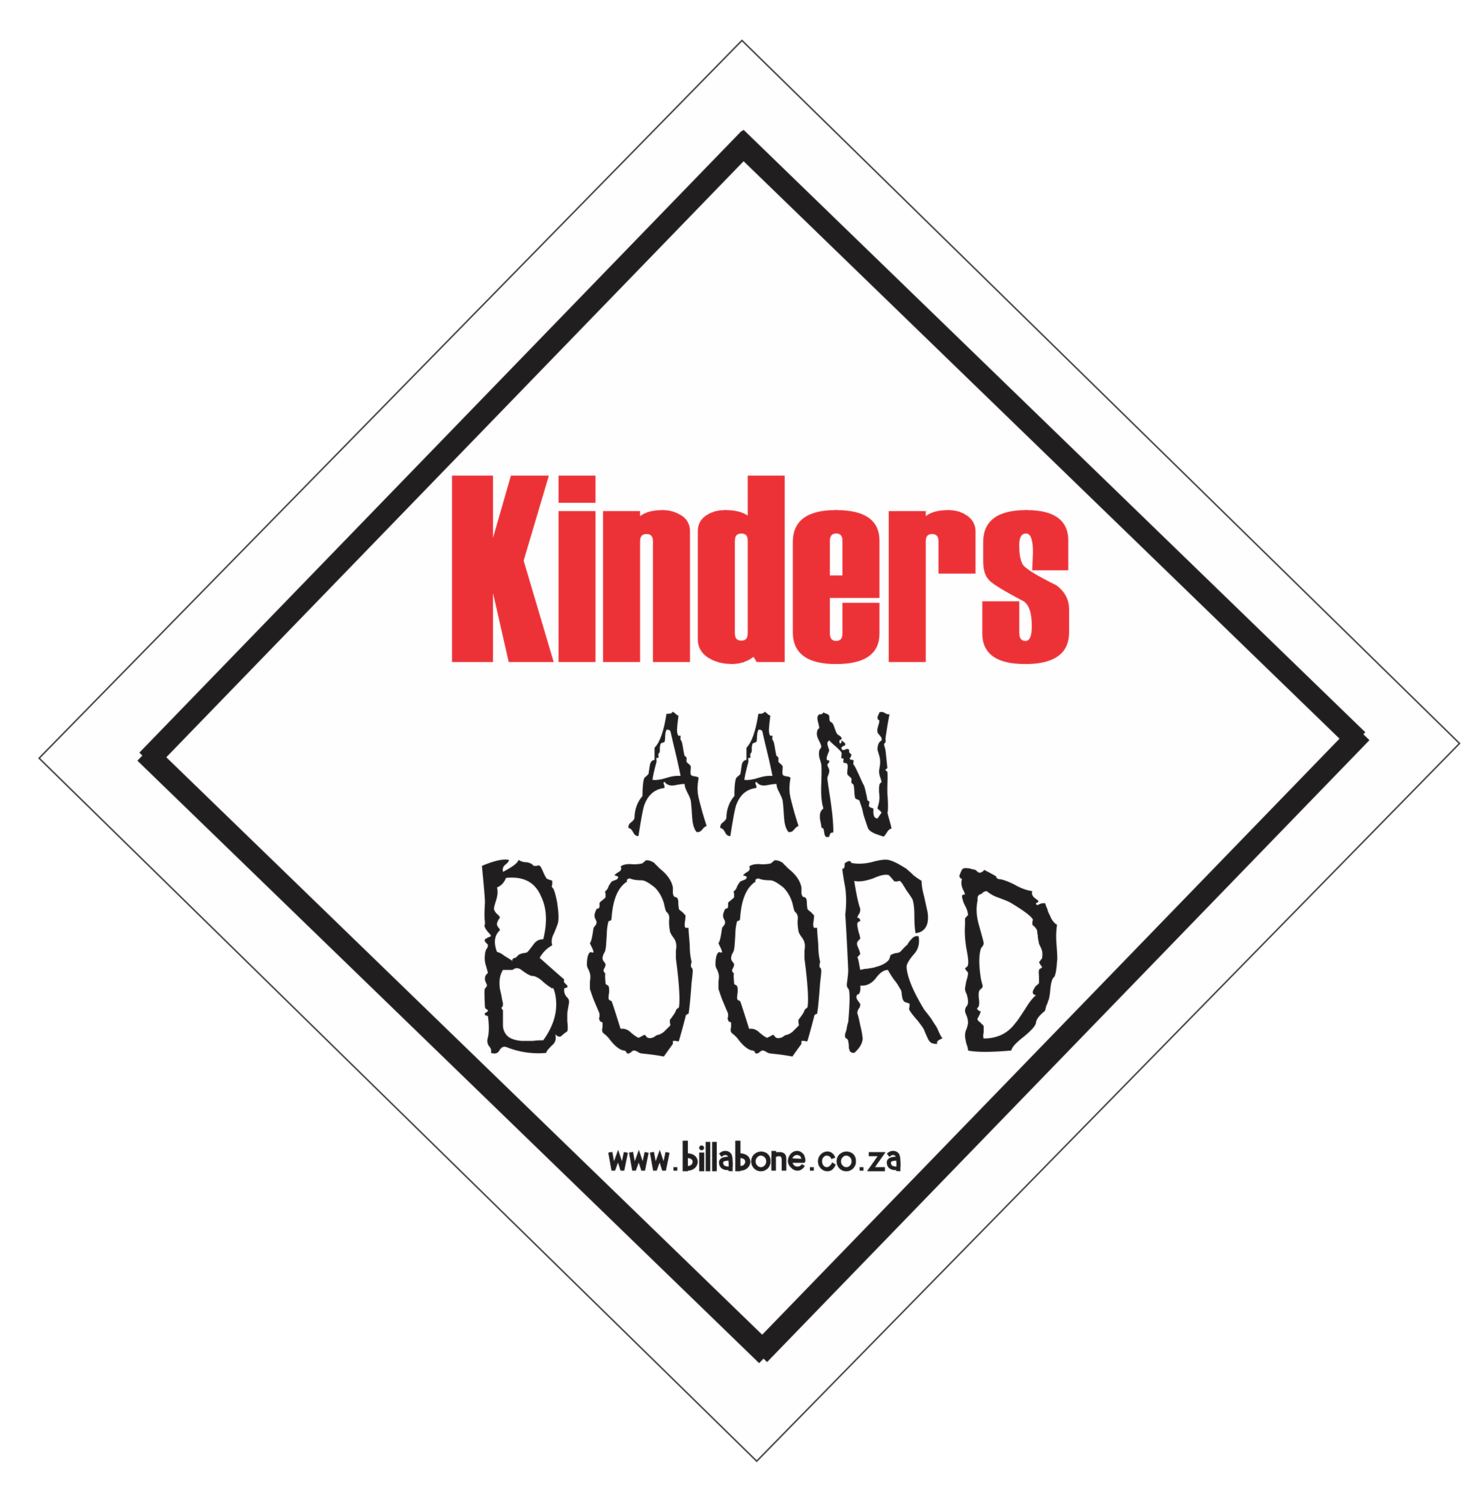 Kinders aan Boord Car Sign or Sticker